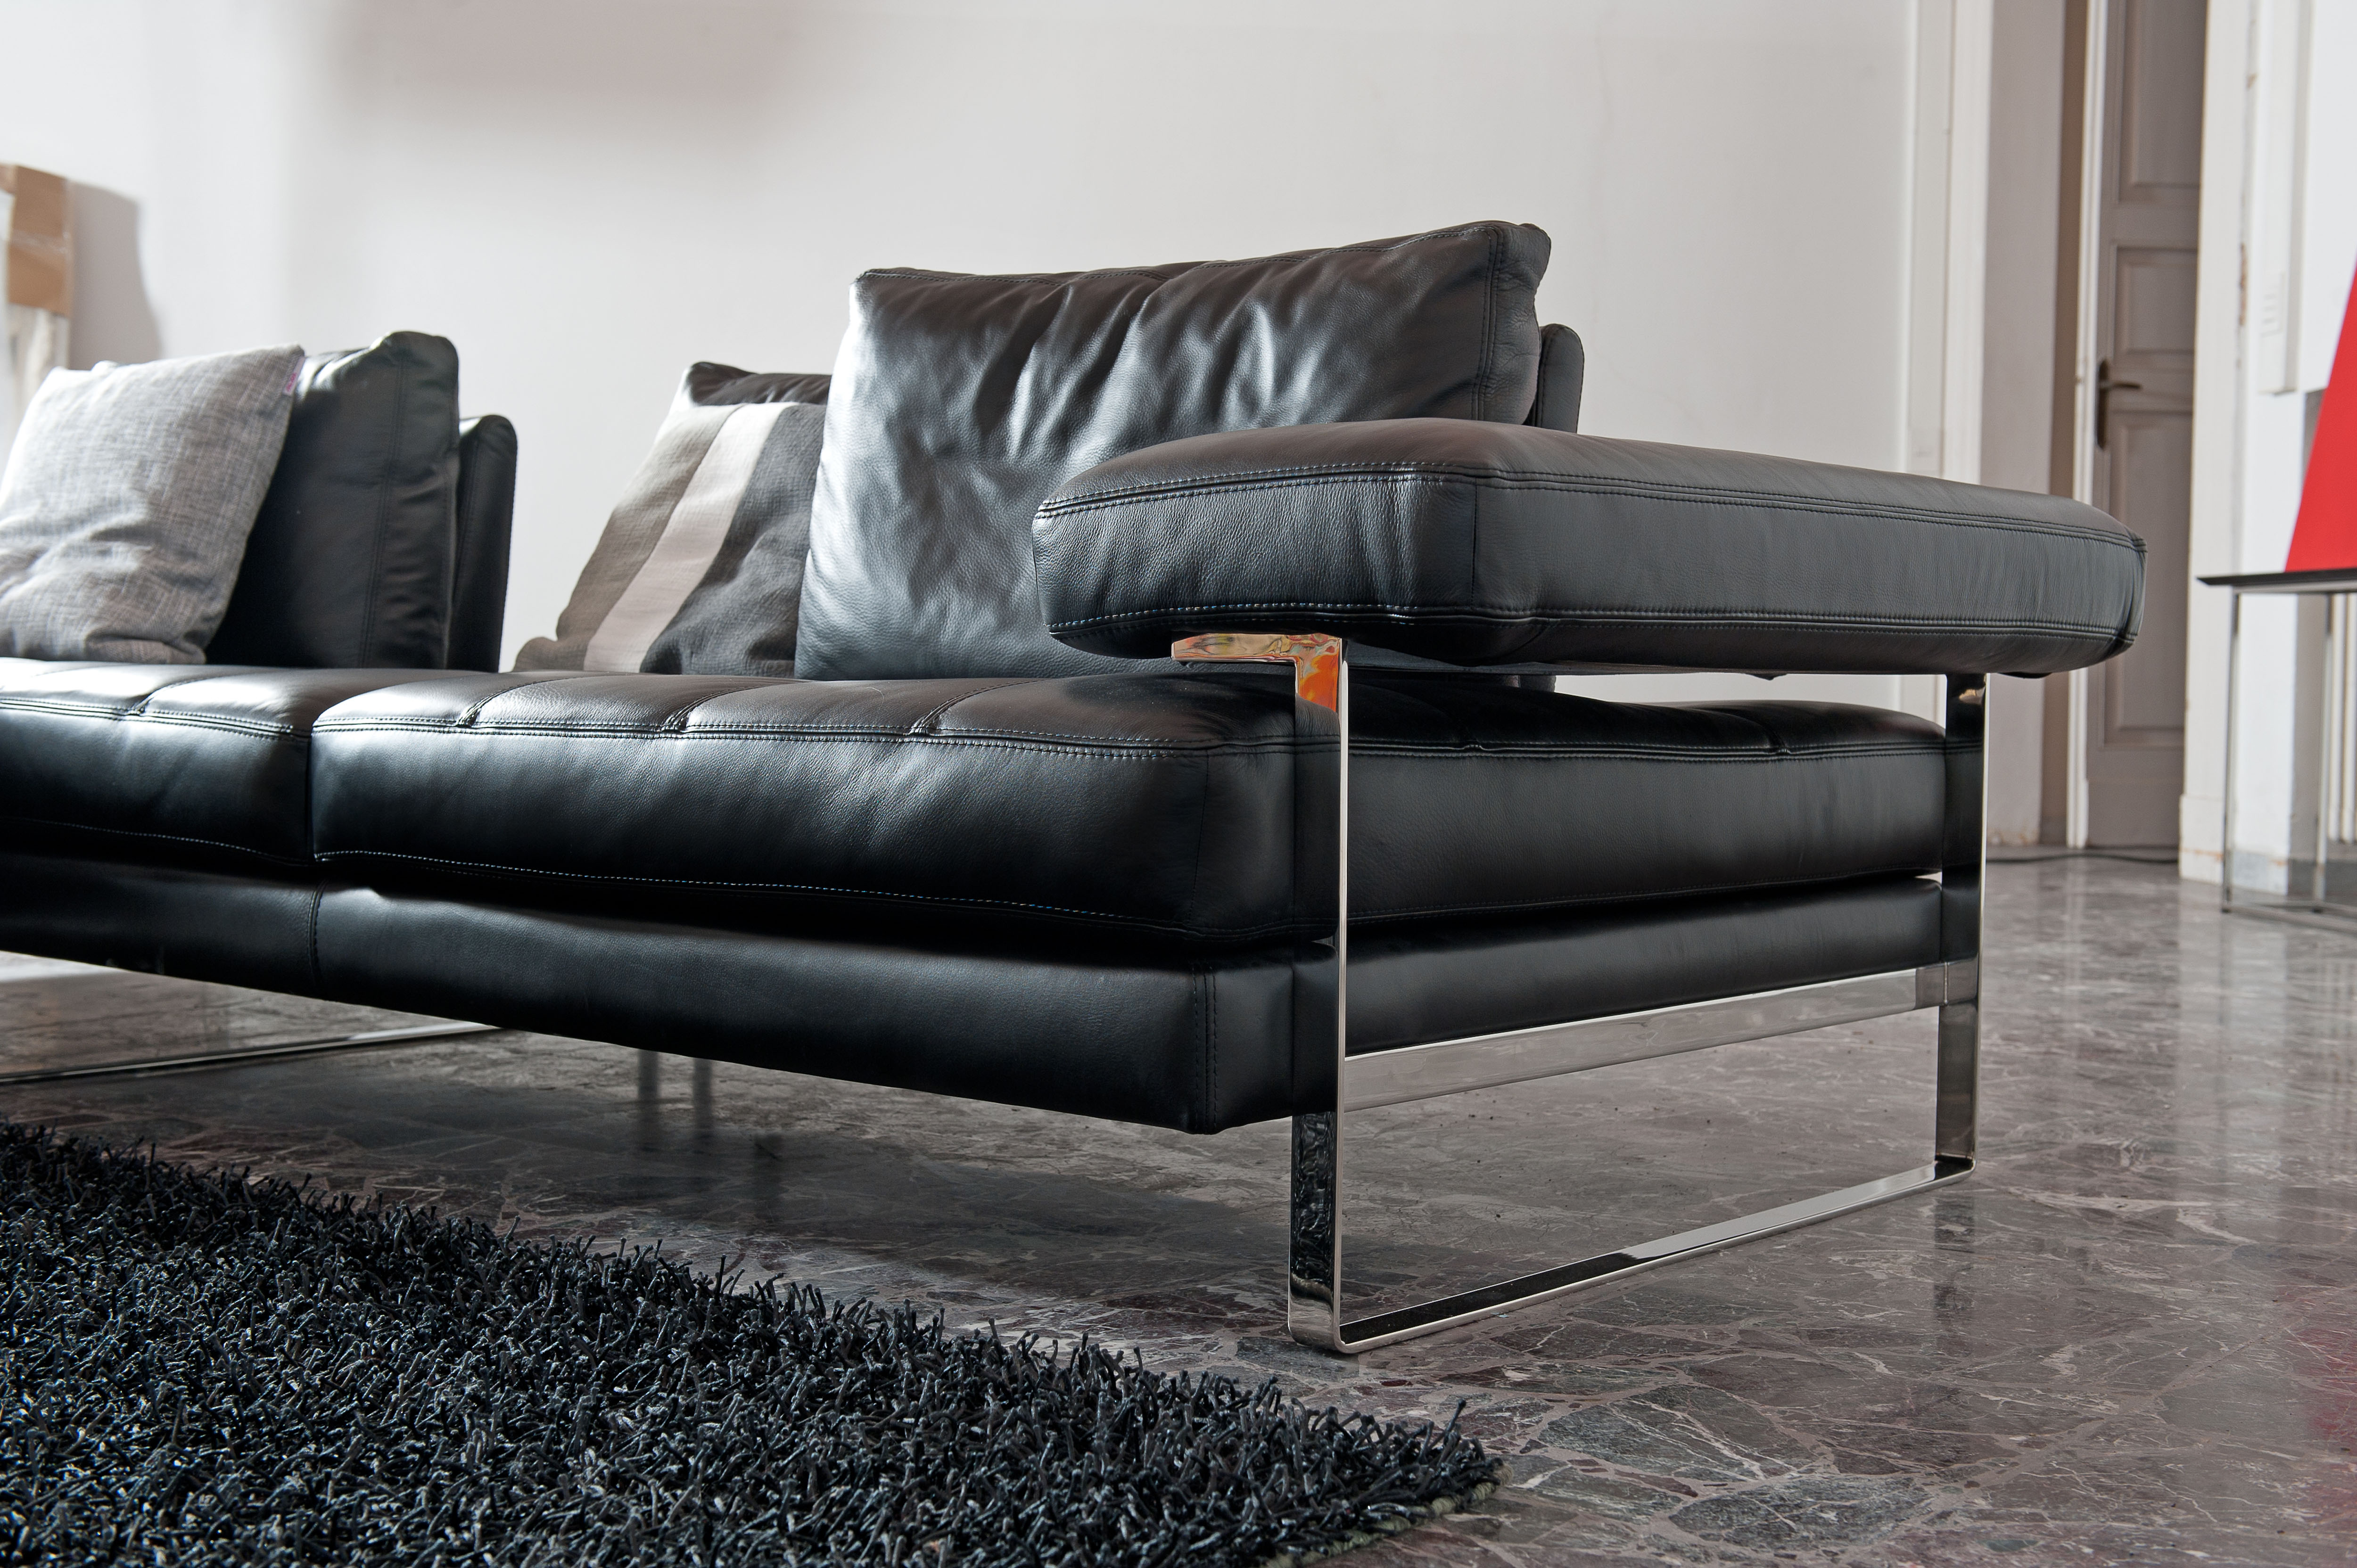 Overnice full italian leather sectionals with pillows for Leather sectional sofa phoenix az